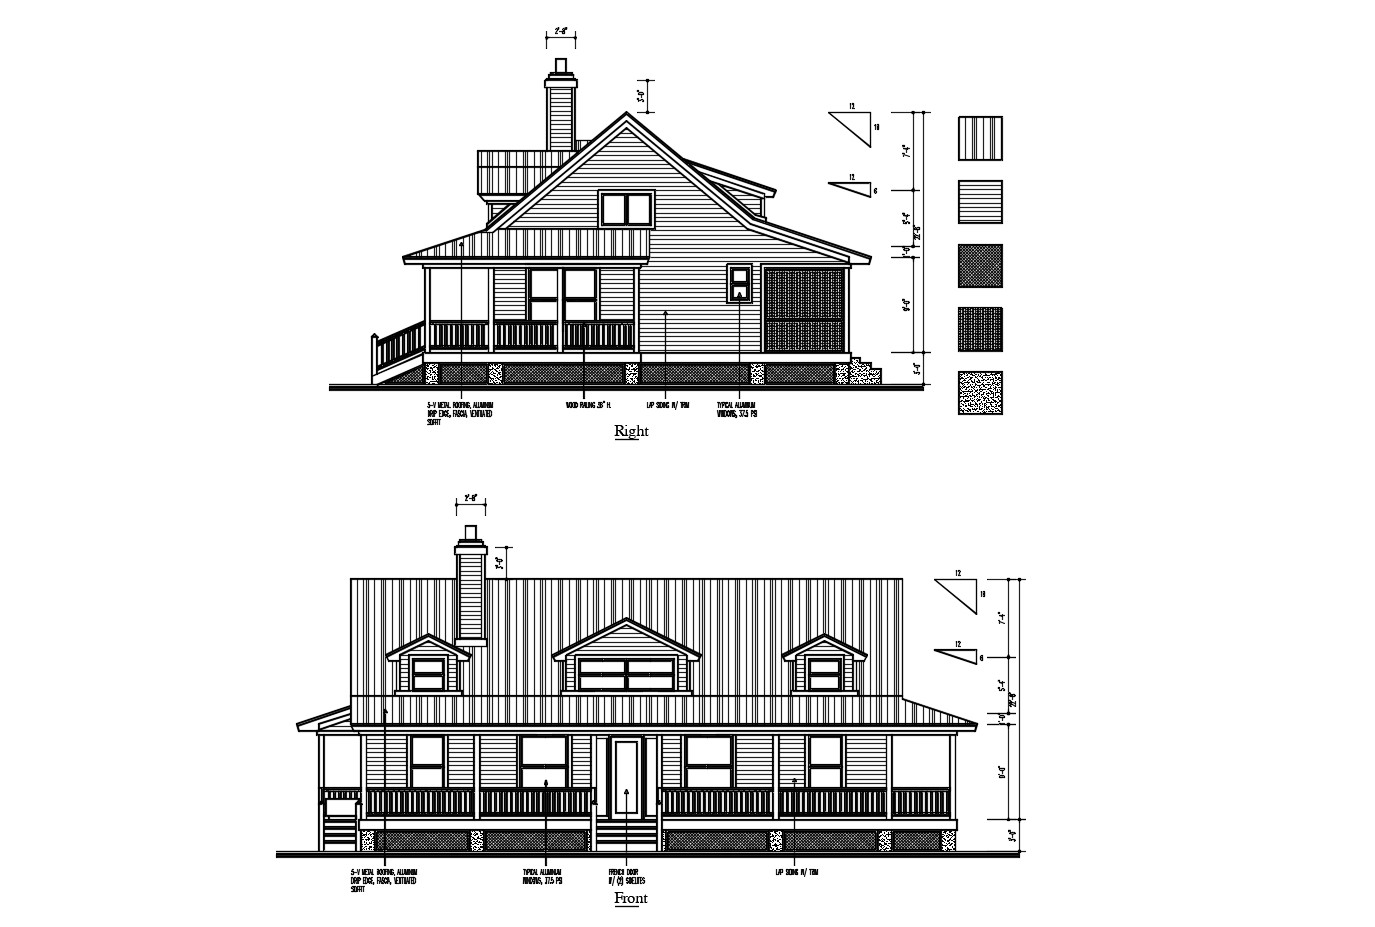 Design of house with elevation in dwg file